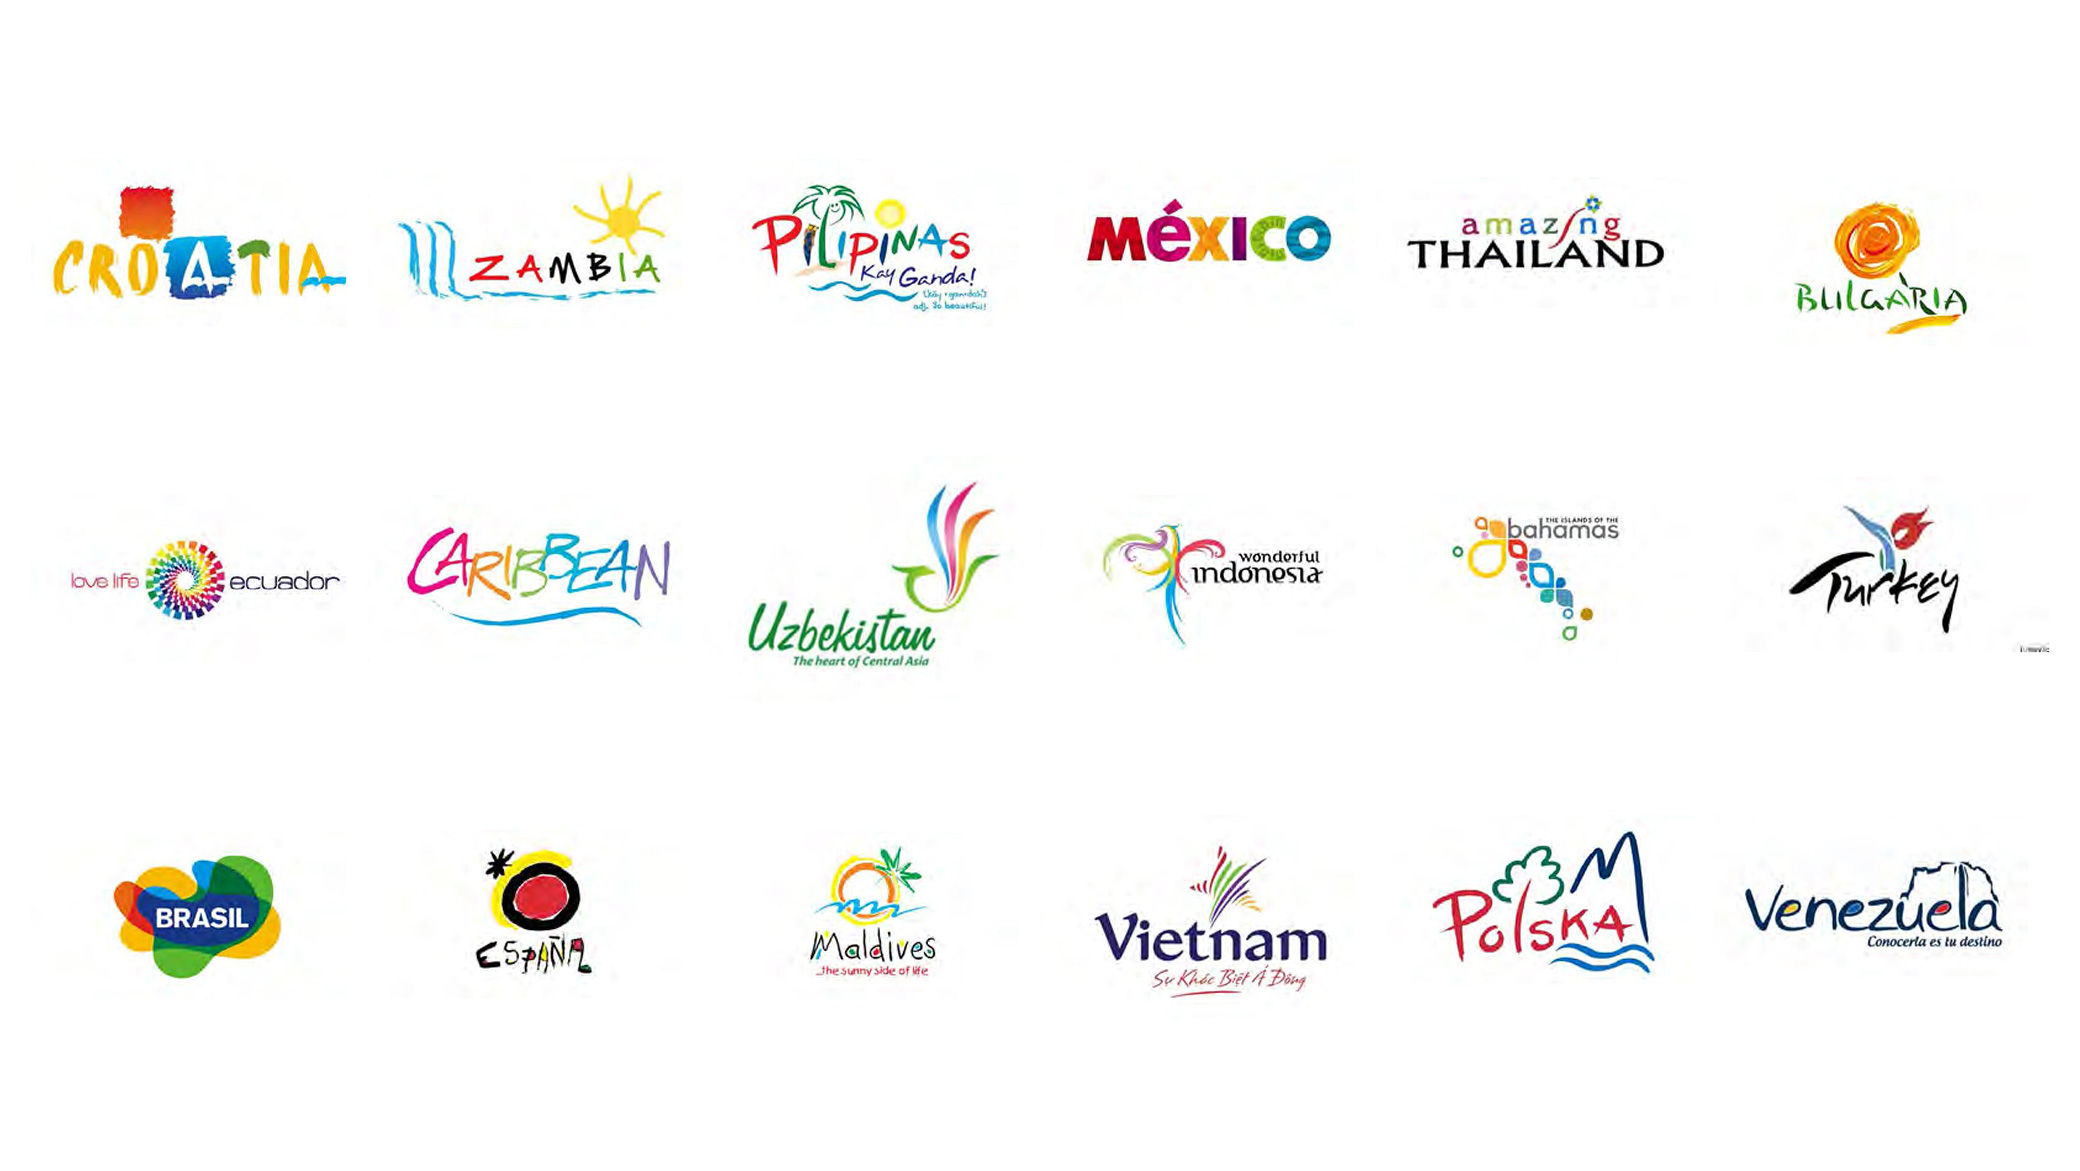 Countries need better logos and branding than these.